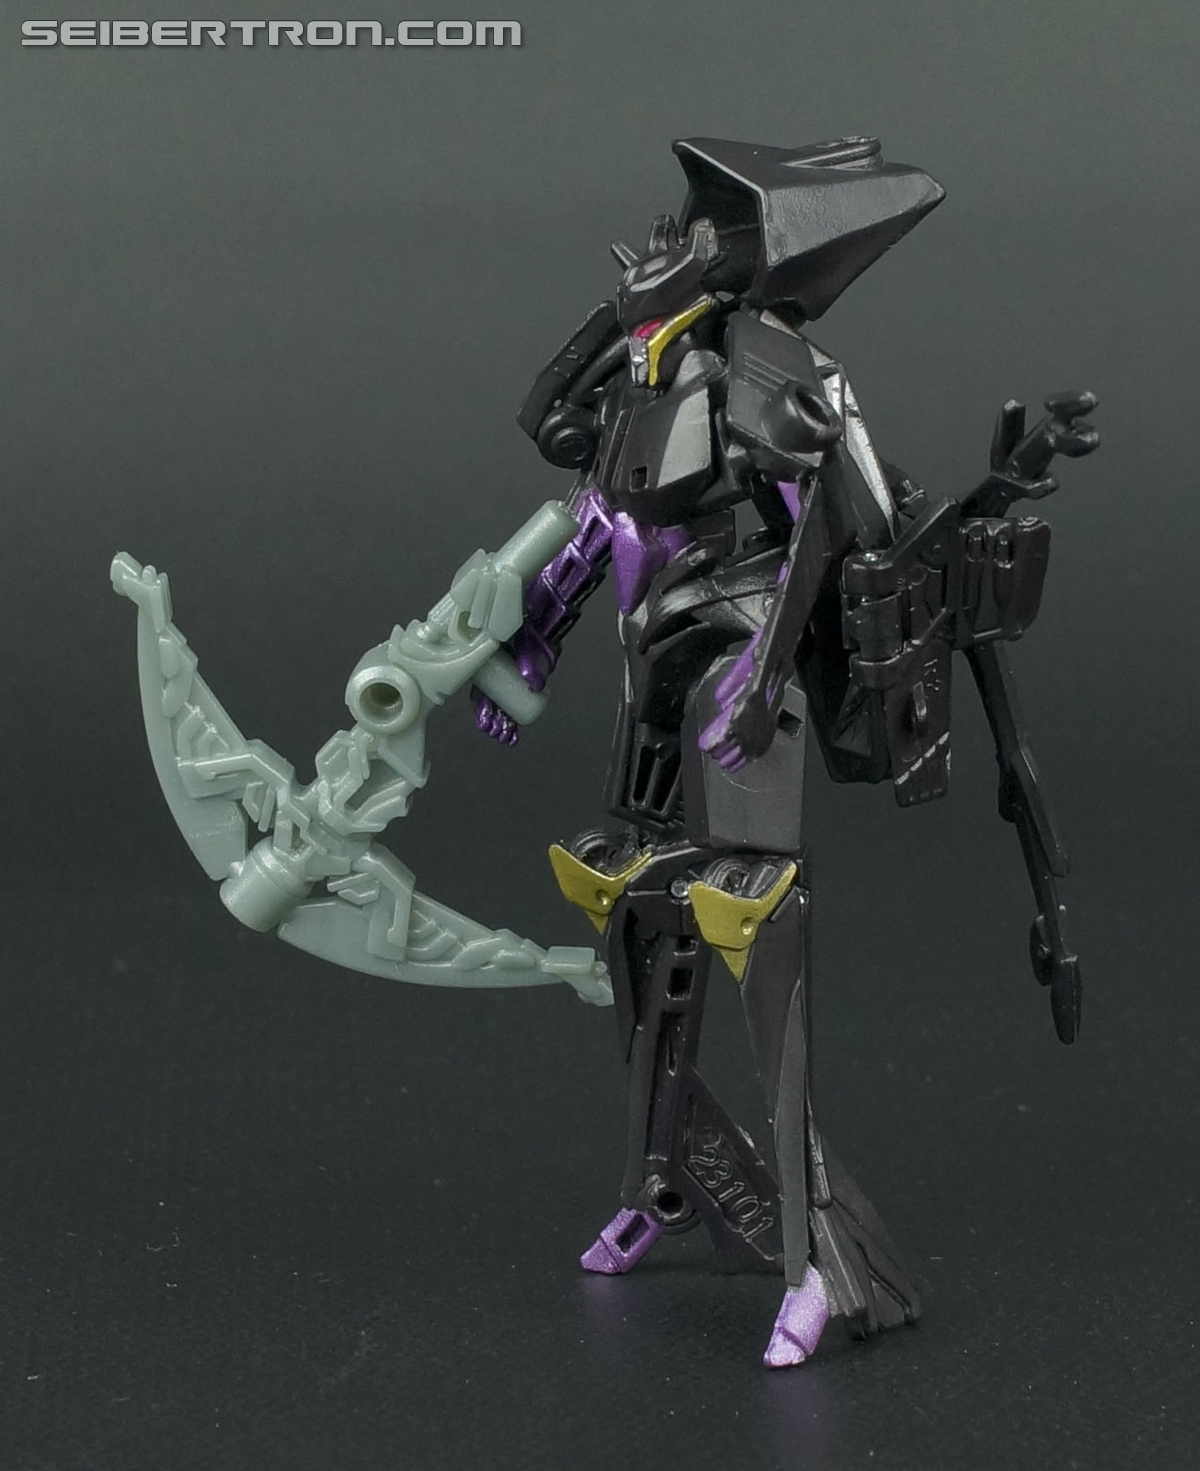 Transformers Prime Beast Hunters Cyberverse Airachnid (Image #59 of 93)